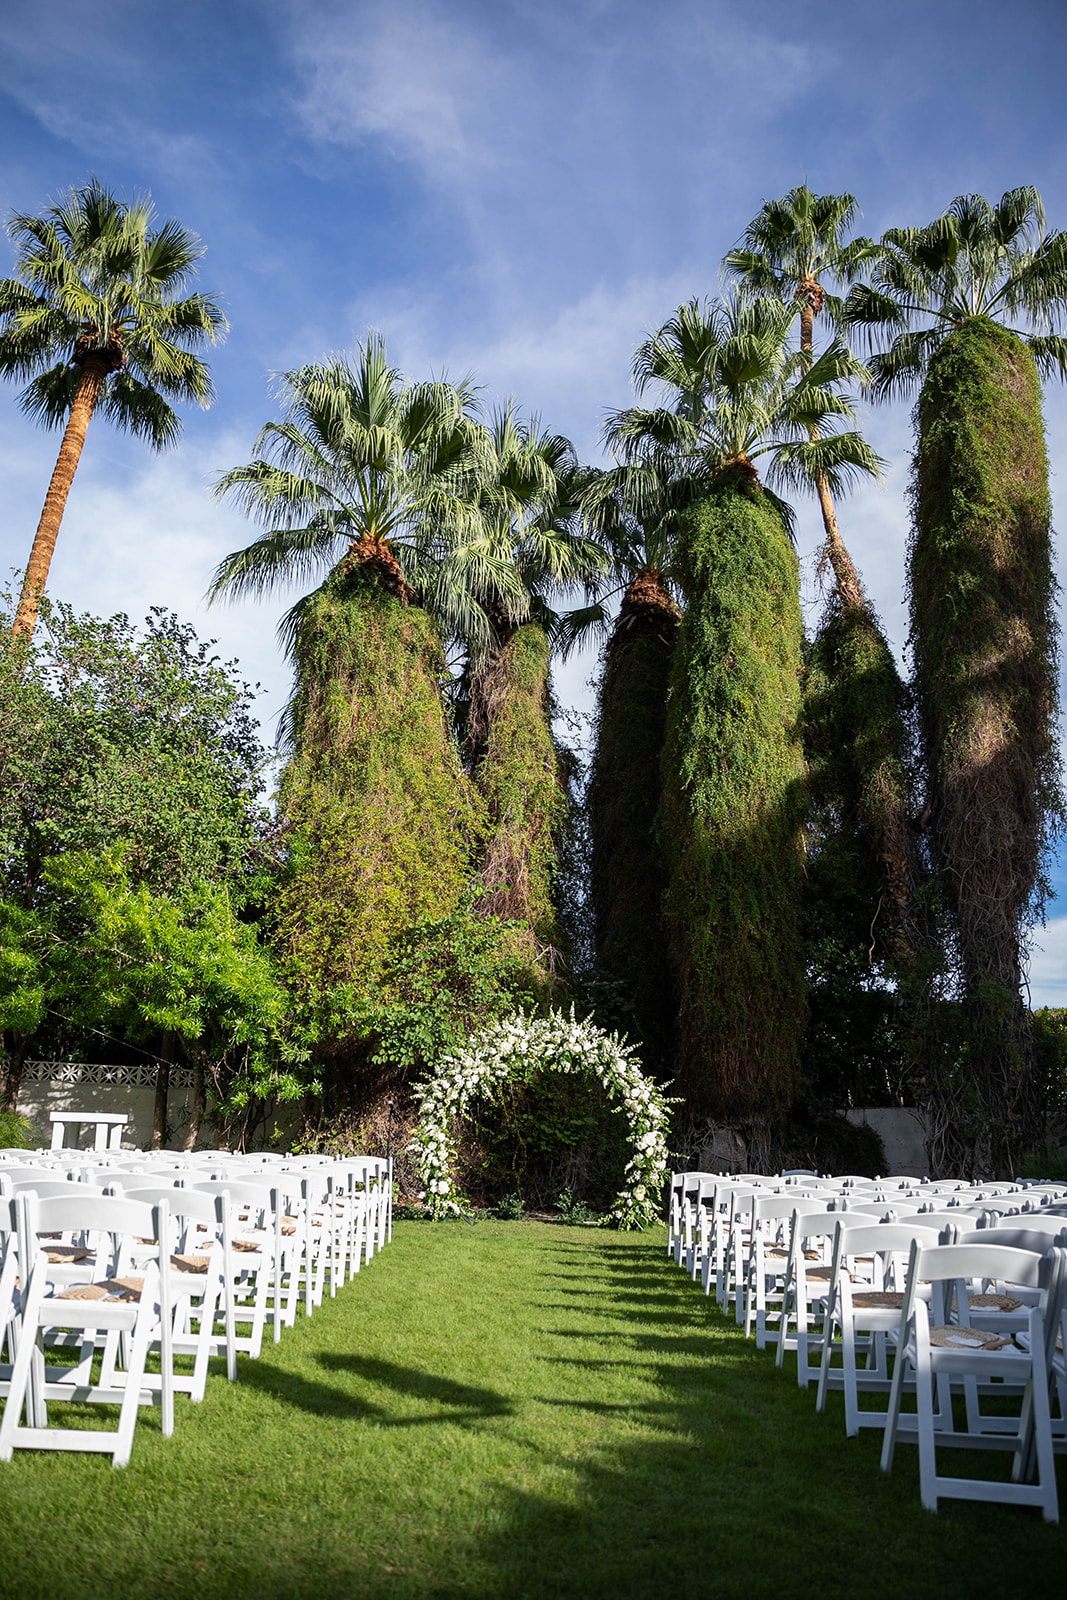 White and Rose Gold Ingleside Inn Palm Springs Wedding | Leah Marie Photography | Cara Goset of Michelle Garibay Events